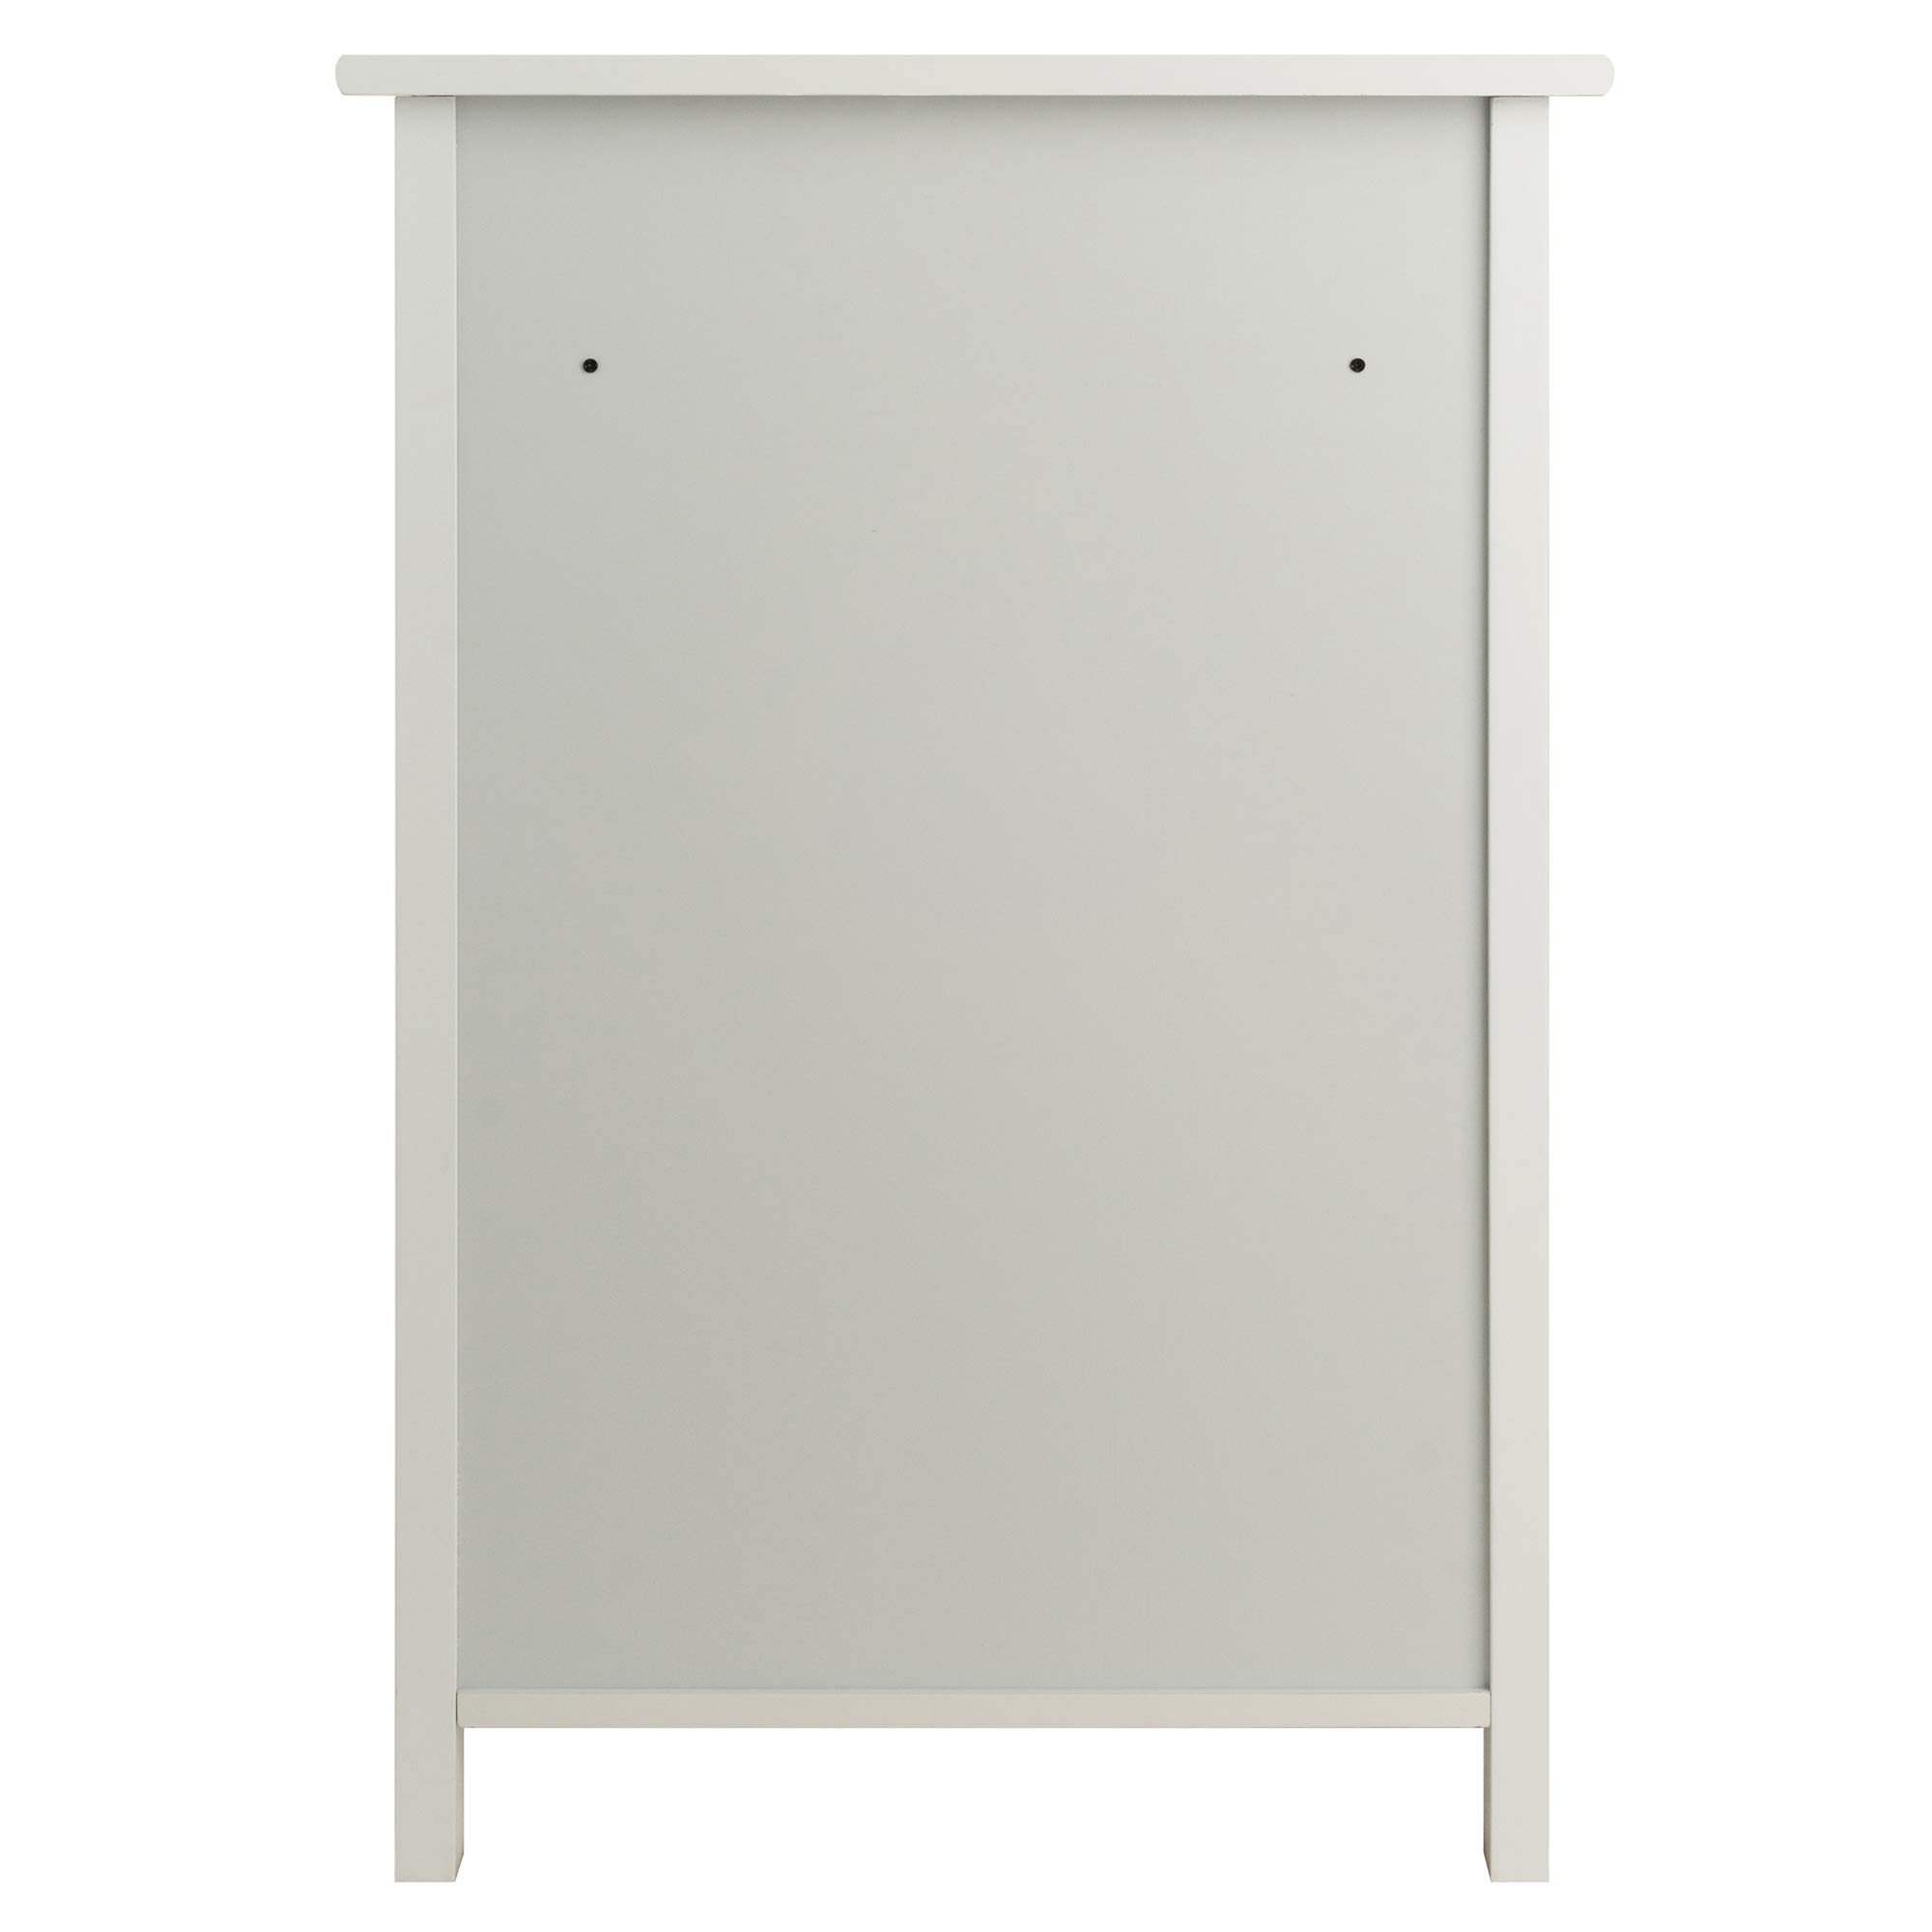 Winsome Wood 10321 Delta File Cabinet White Home Office, by Winsome Wood (Image #6)